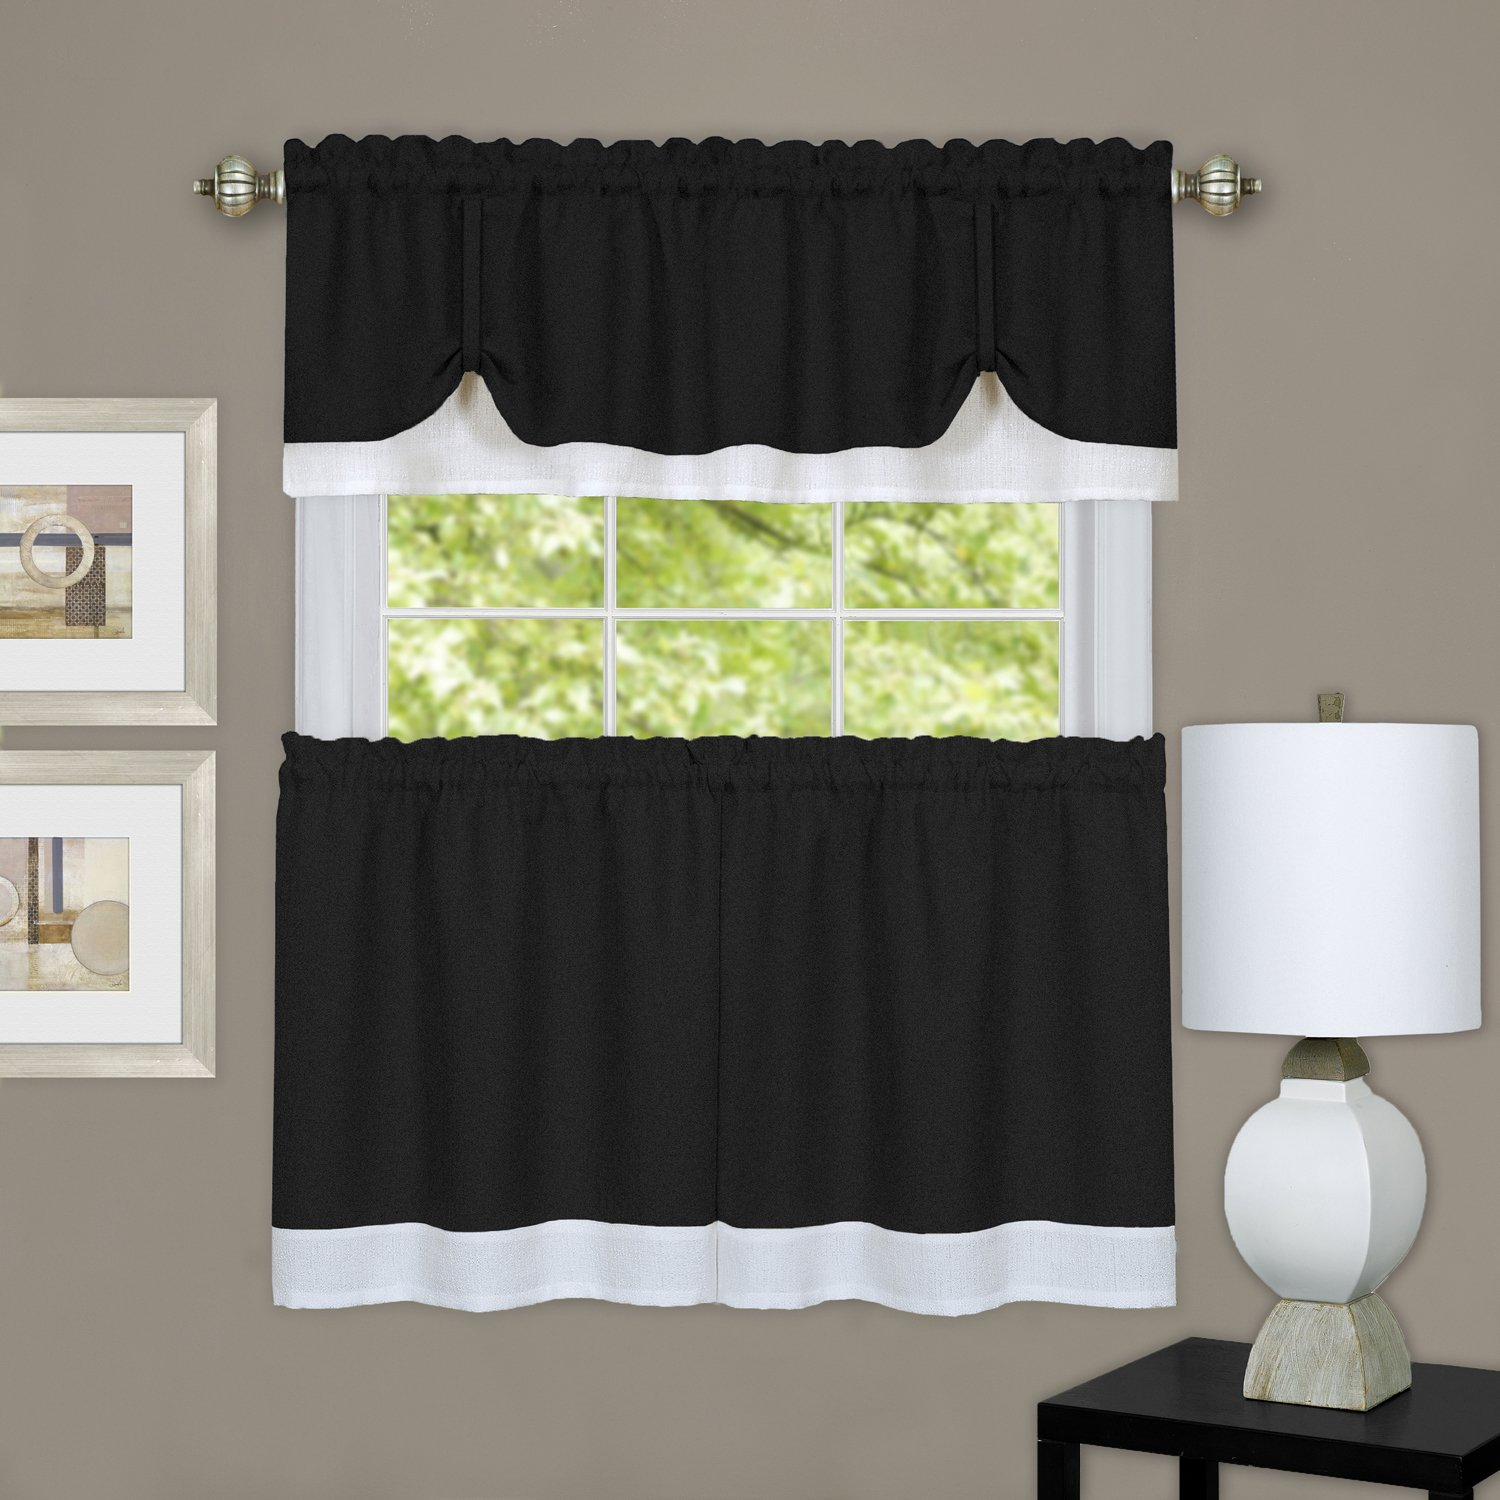 Achim Home Furnishings DRTV36BW12 Darcy Window Curtain Tier & Valance Set 58x36/58x14, Black & White